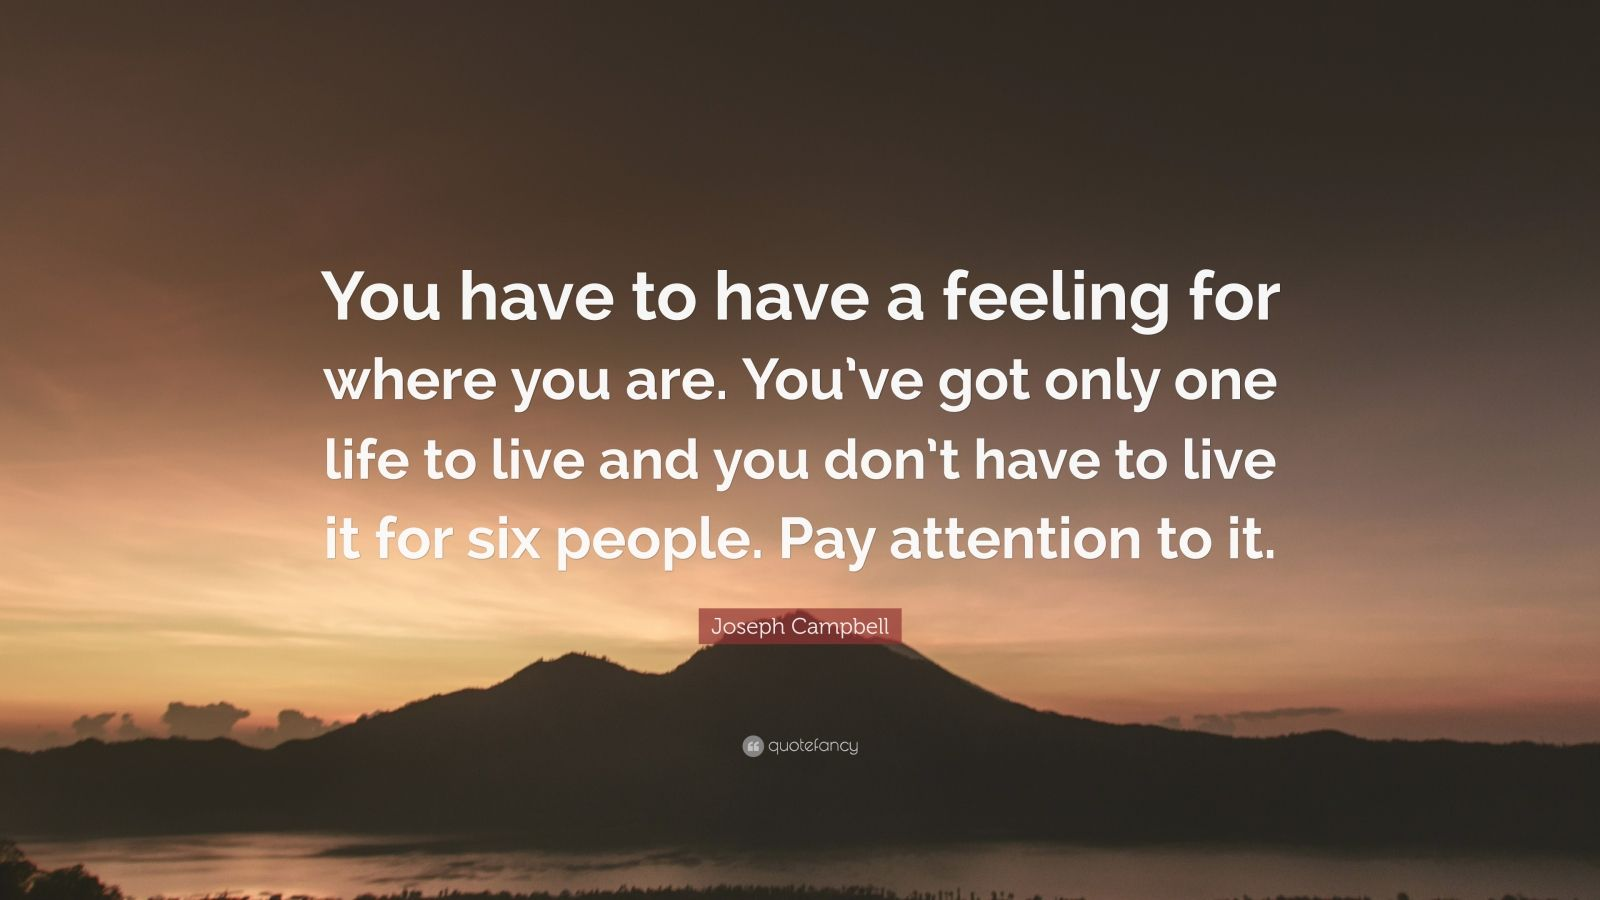 """Joseph Campbell Quote: """"You have to have a feeling for where you are. You've got only one life to live and you don't have to live it for six people. Pay attention to it."""""""